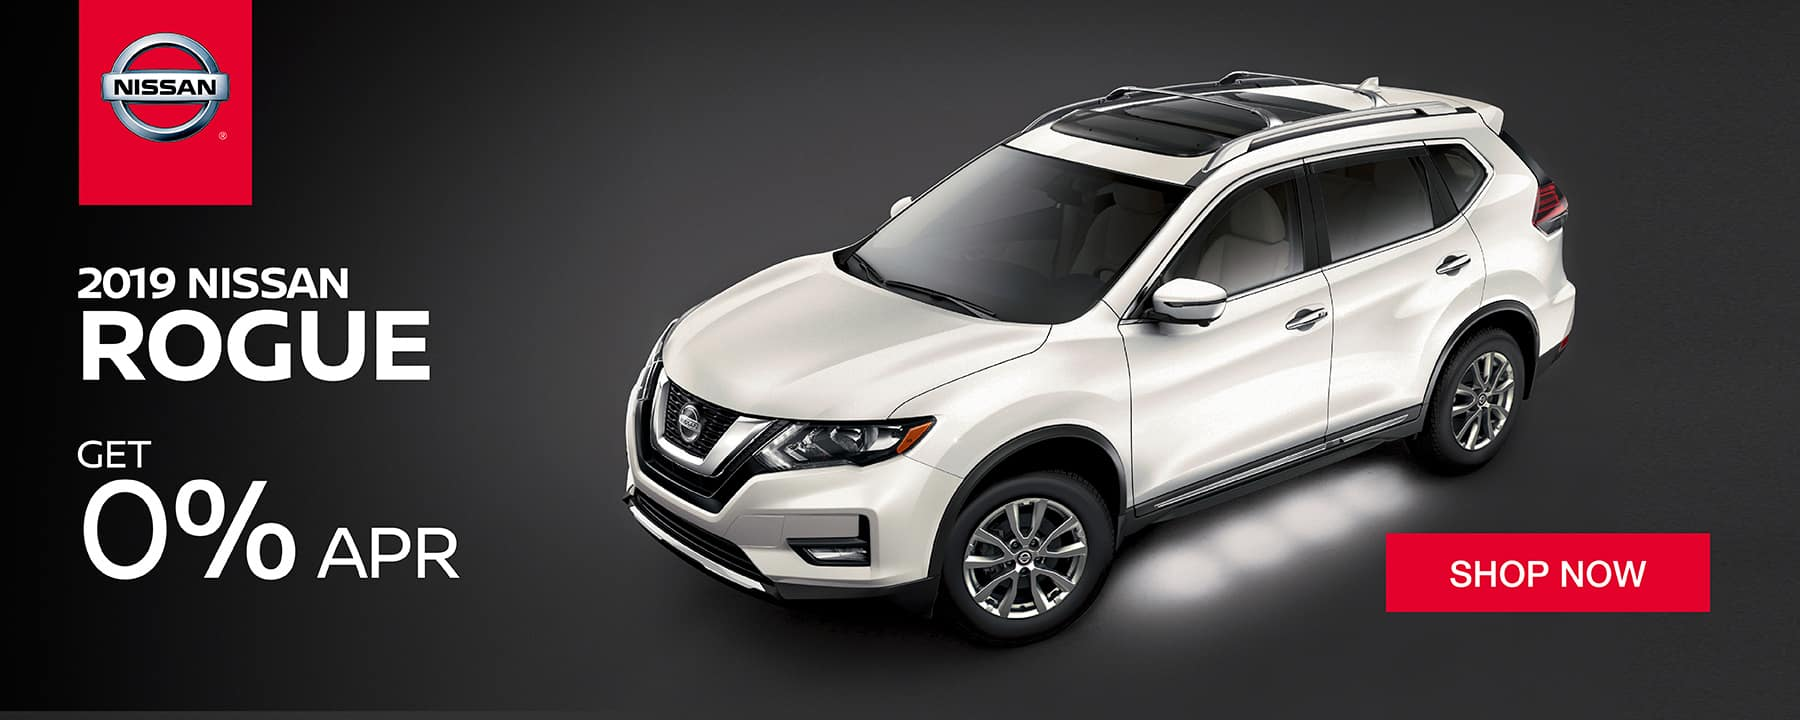 hight resolution of get 0 apr financing on the 2019 nissan rogue available now at berman nissan of